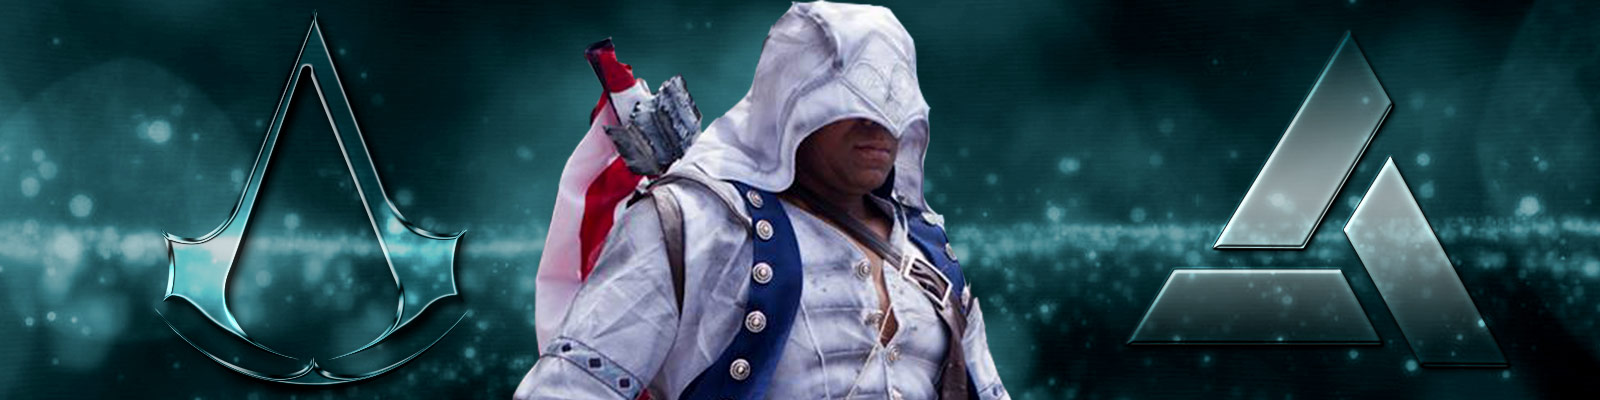 Assassin's Creed Costume Upgrade